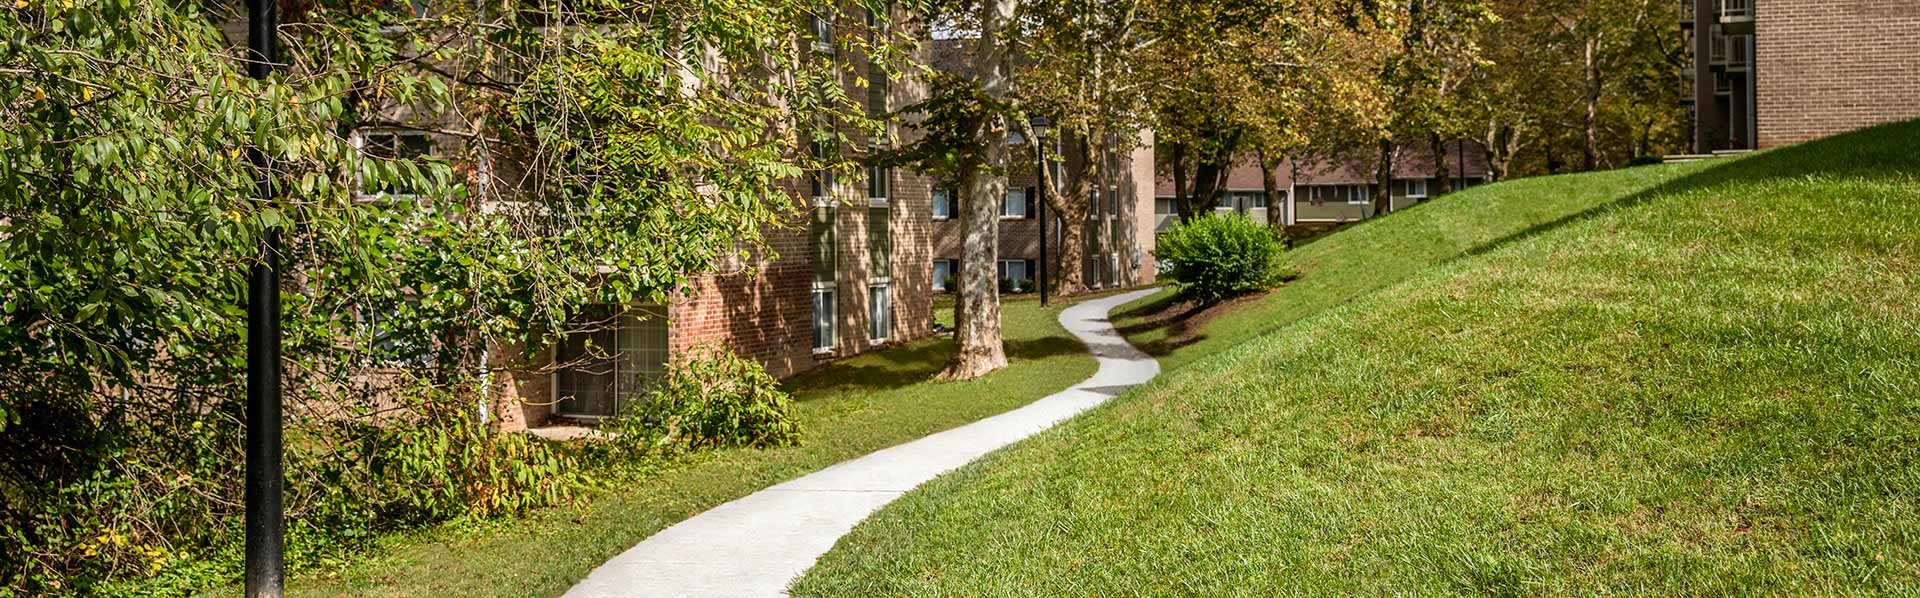 Spacious Lawn Areas with Beautiful Landscaping at The Brook at Columbia, Maryland, 21044